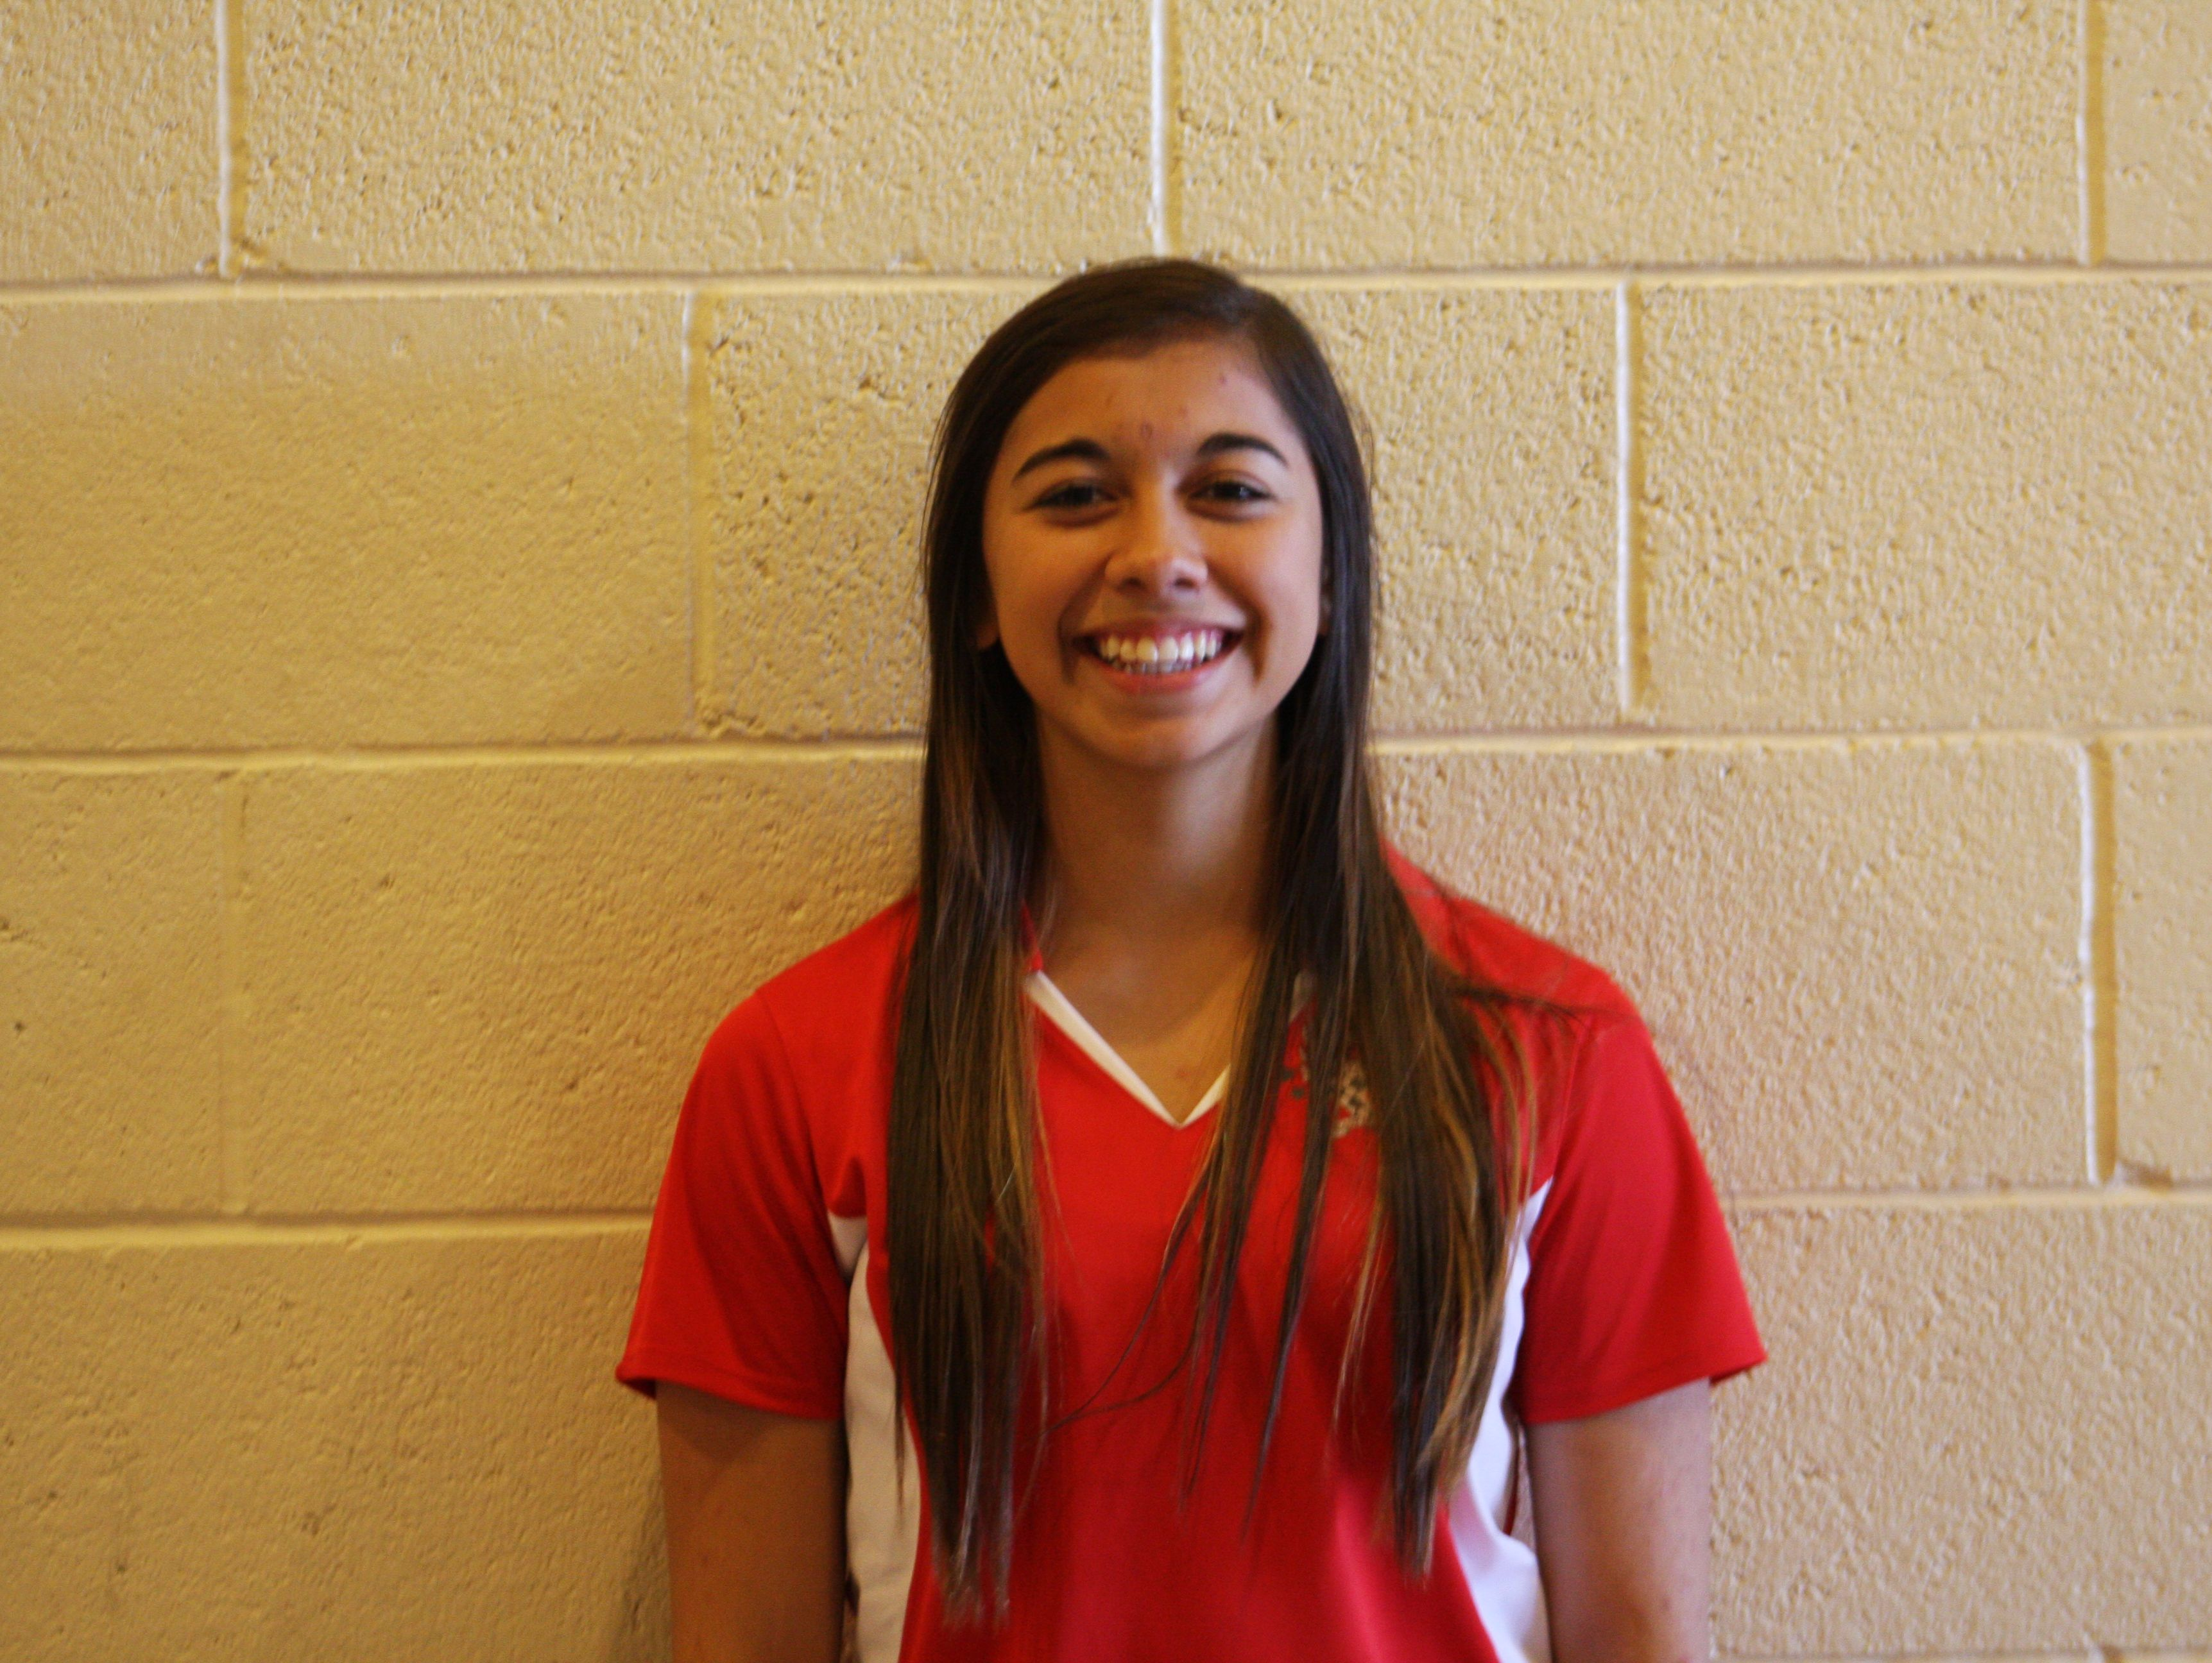 Shanya Marquez, from Mohave Valley River Valley, is the Arizona Sports Awards Female Athlete of the Week, presented by La-Z-Boy Furniture Galleries, for Jan. 26-Feb. 2.